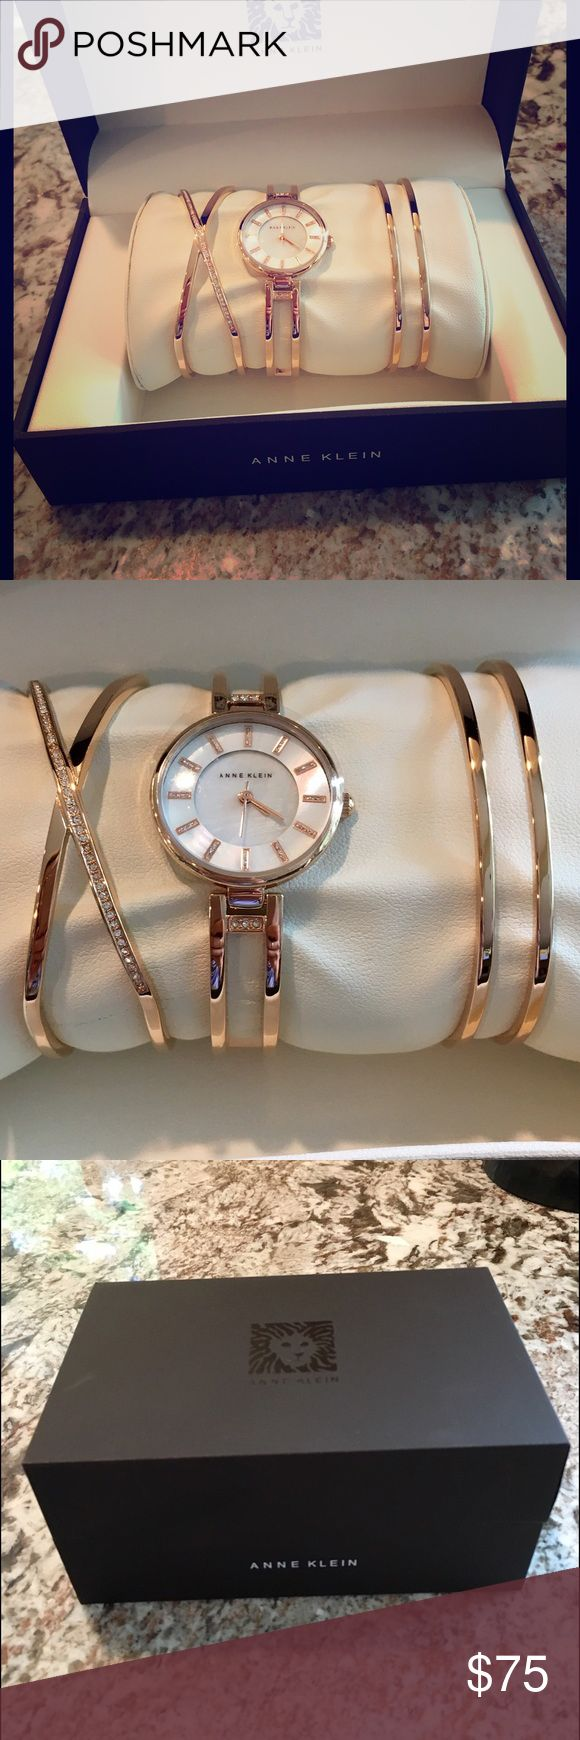 Anne Klein Crystal Rose Gold Watch Bracelet Set NIB Beautiful Rose-Gold Crystal Accent Stainless Steel Bangle Bracelet and Watch Set. Quartz movement, splash-resistant. Set includes Anne Klein watch & two additional Anne Klein bangle bracelets. Never worn. Anne Klein Jewelry Bracelets